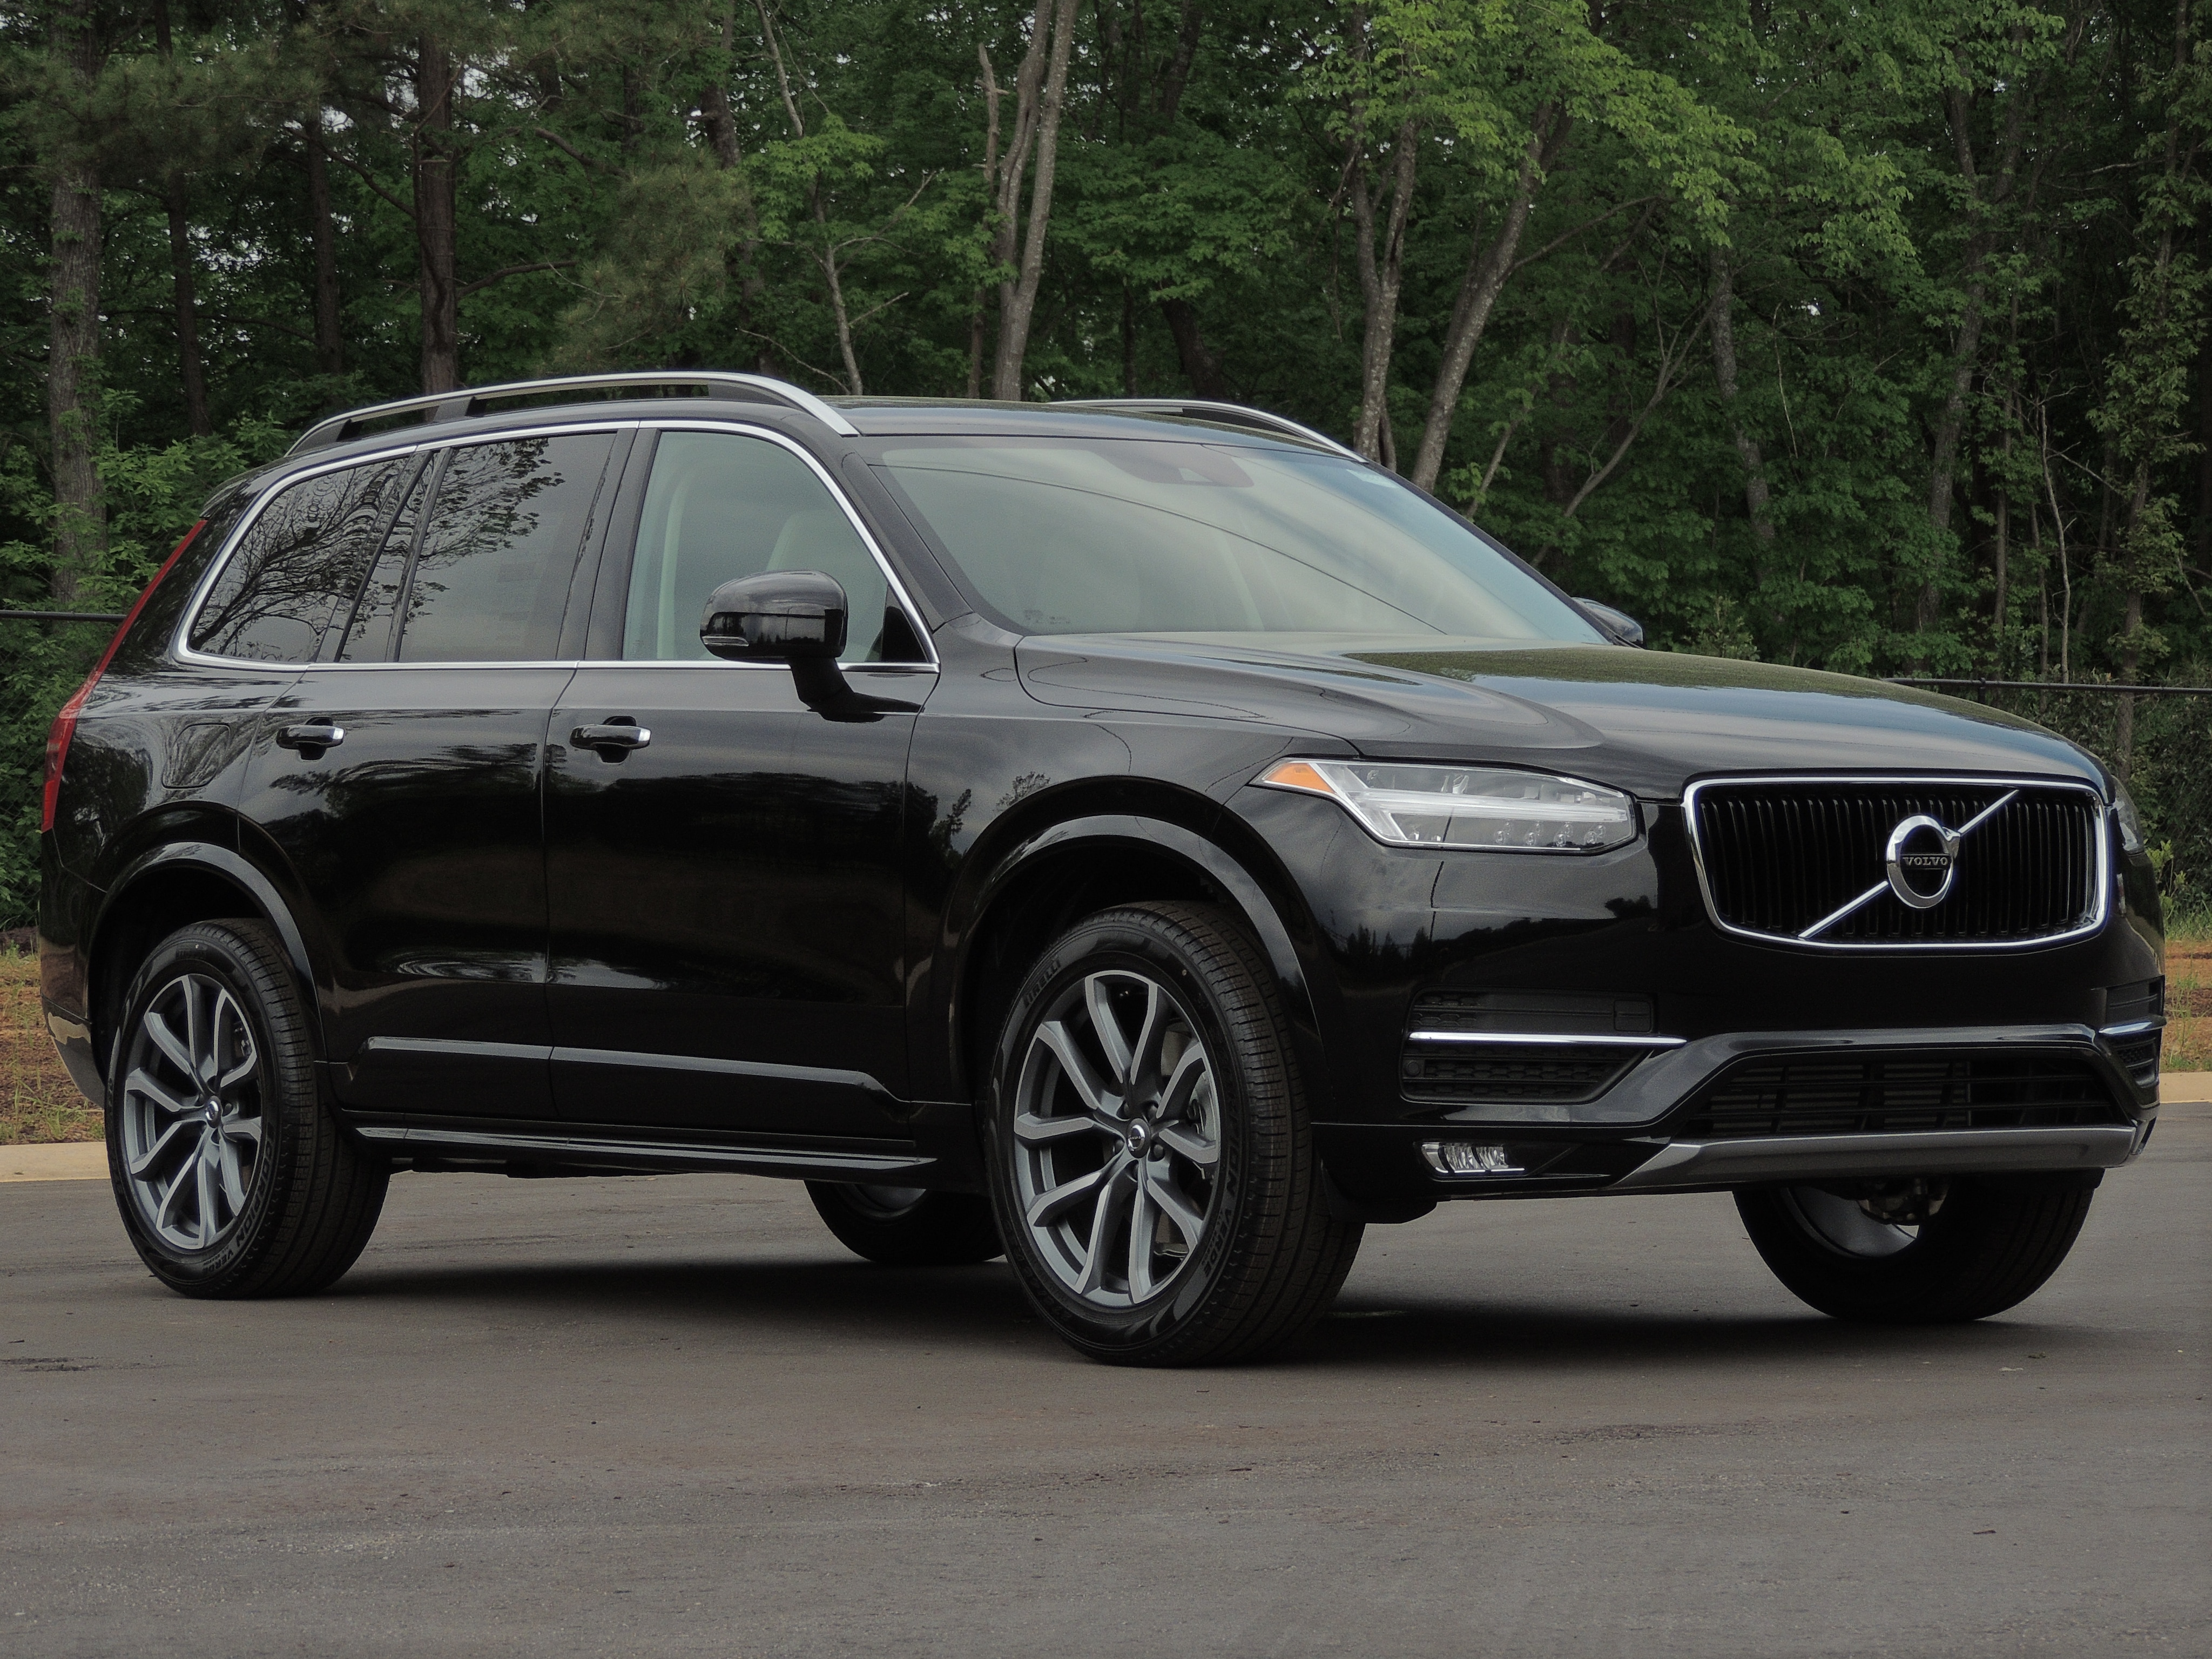 2019 Volvo XC90 For Sale in Cary NC   Volvo Cars of Cary